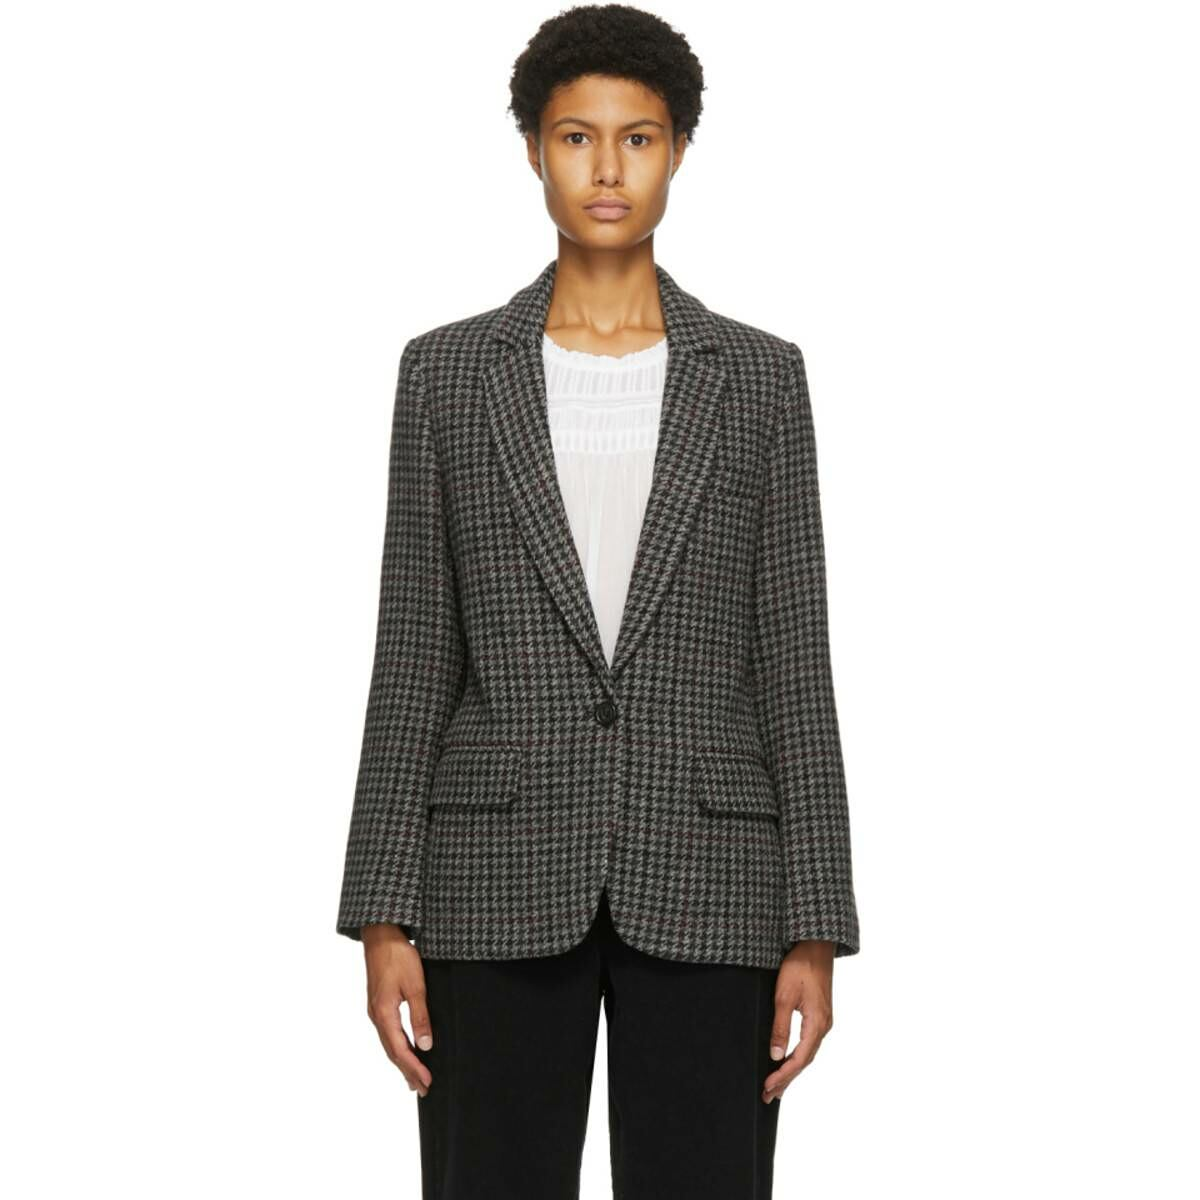 Isabel Marant Etoile Grey Charly Blazer Ssense USA WOMEN Women FASHION Womens BLAZER